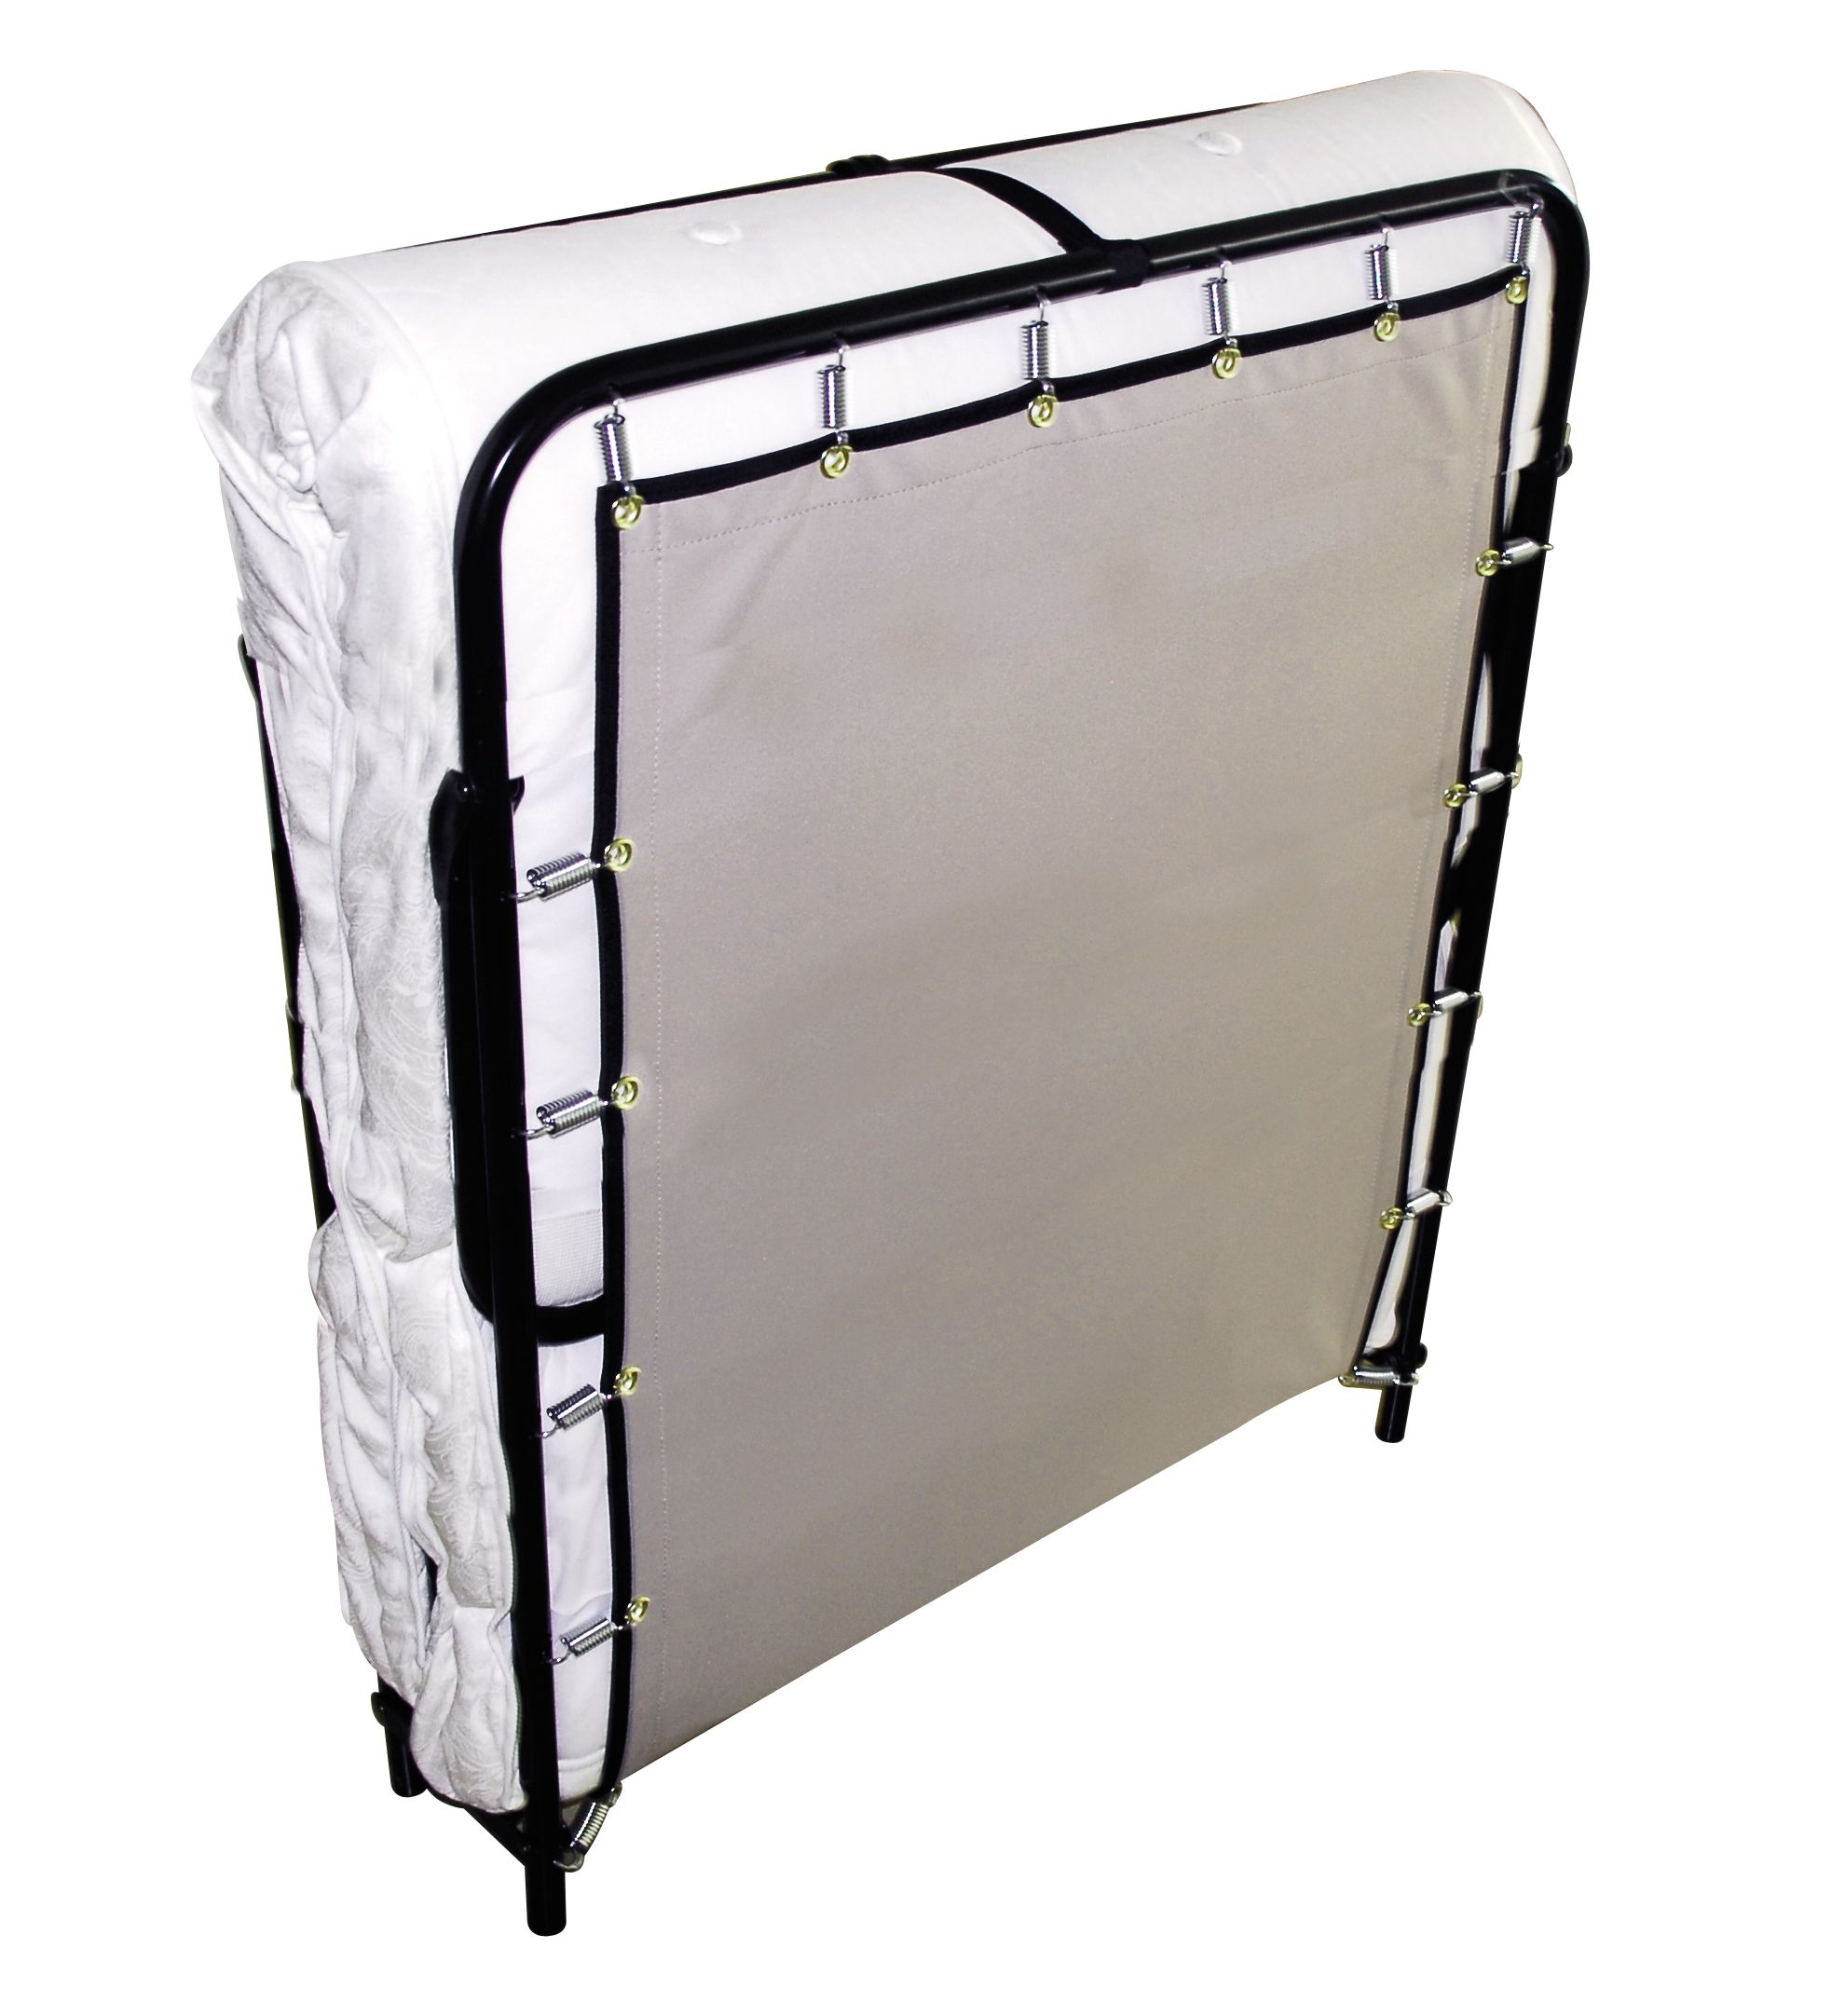 Folding Guest Bed Camping Cot At Walmart Ca Folding Guest Bed